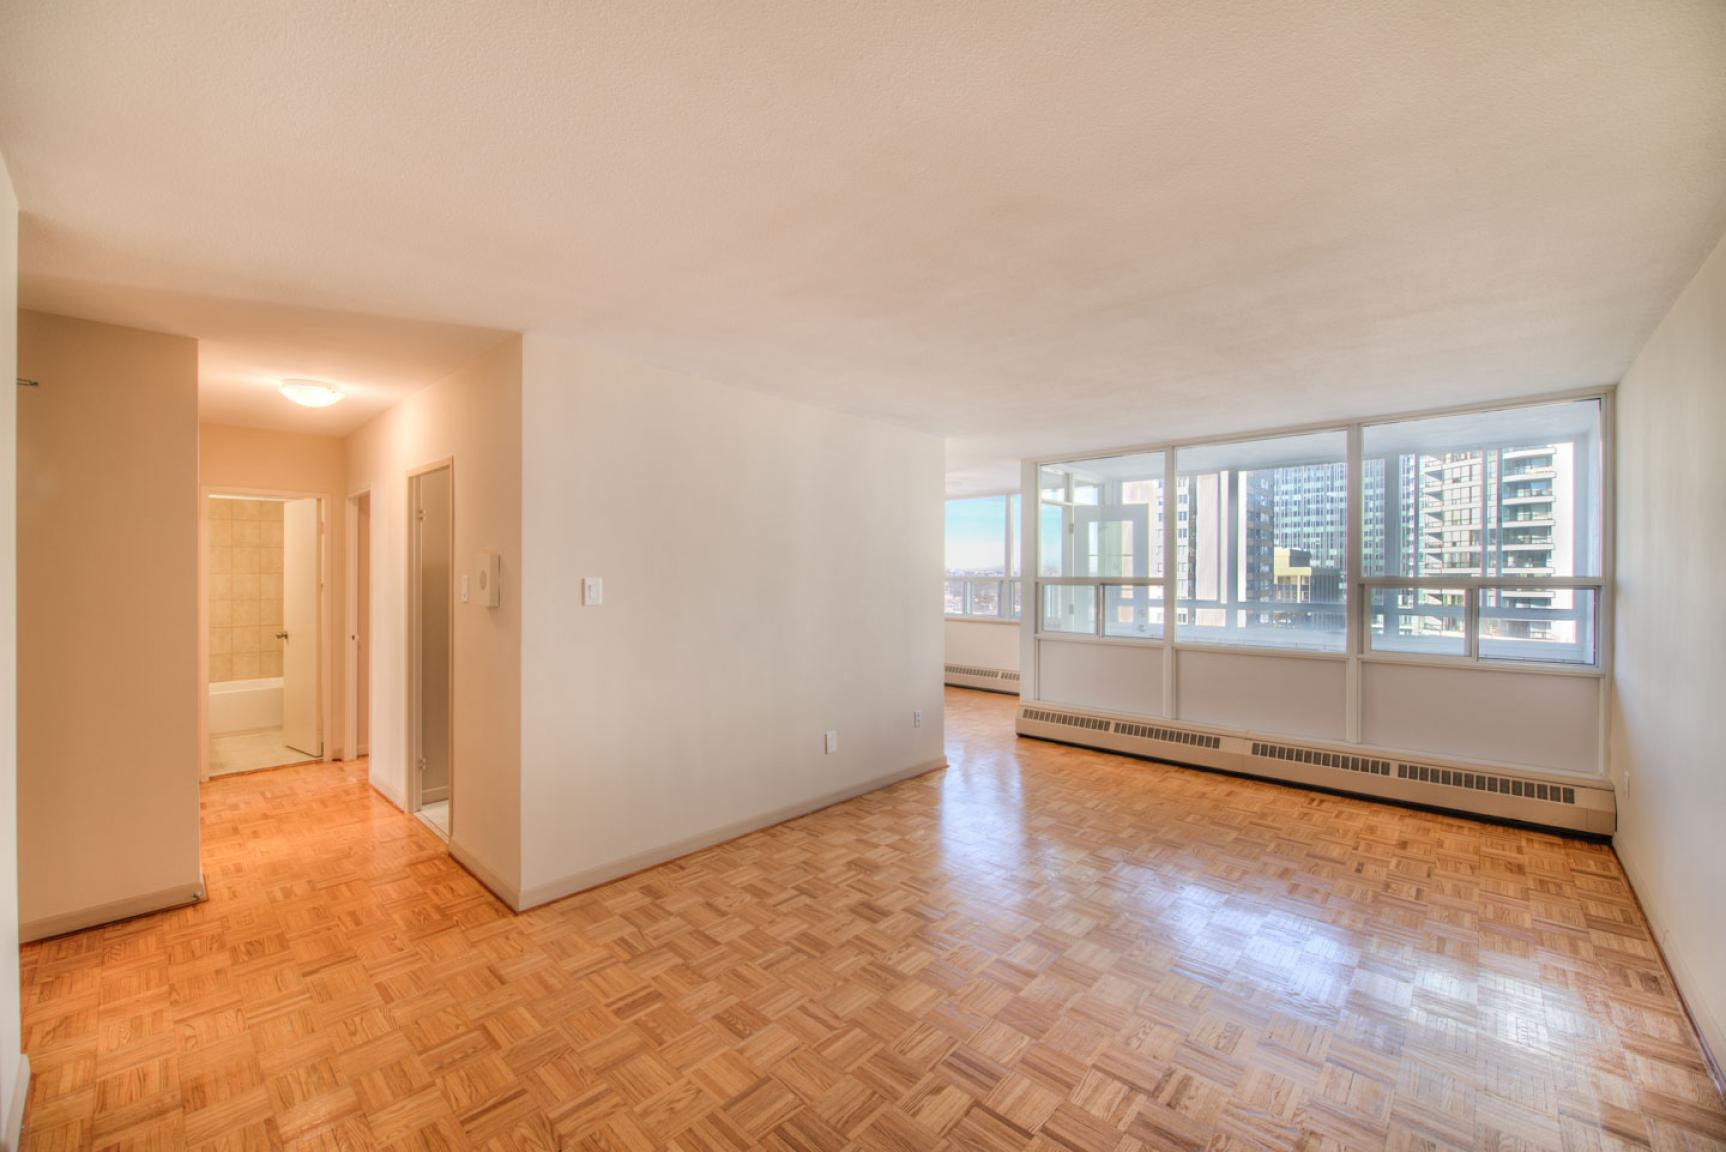 1 bedroom Apartments for rent in Toronto at Dunfield Tower - Photo 08 - RentersPages – L138879